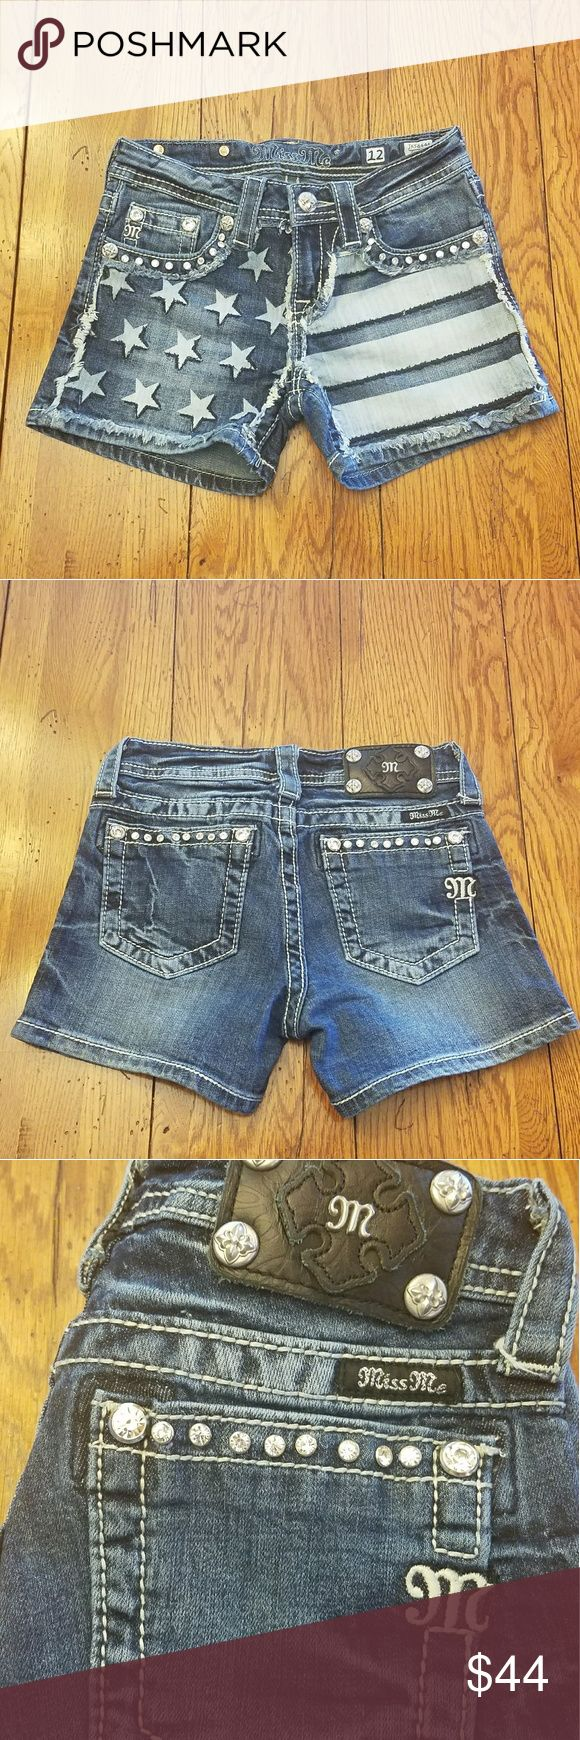 Girls Miss Me Jeans Bling Flag Shorts Size 12 🇺🇸 Excellent Condition  Like New  NO STAINS  ALL Bling Attached ADORABLE  Will ship within 24 hours Miss Me Bottoms Shorts